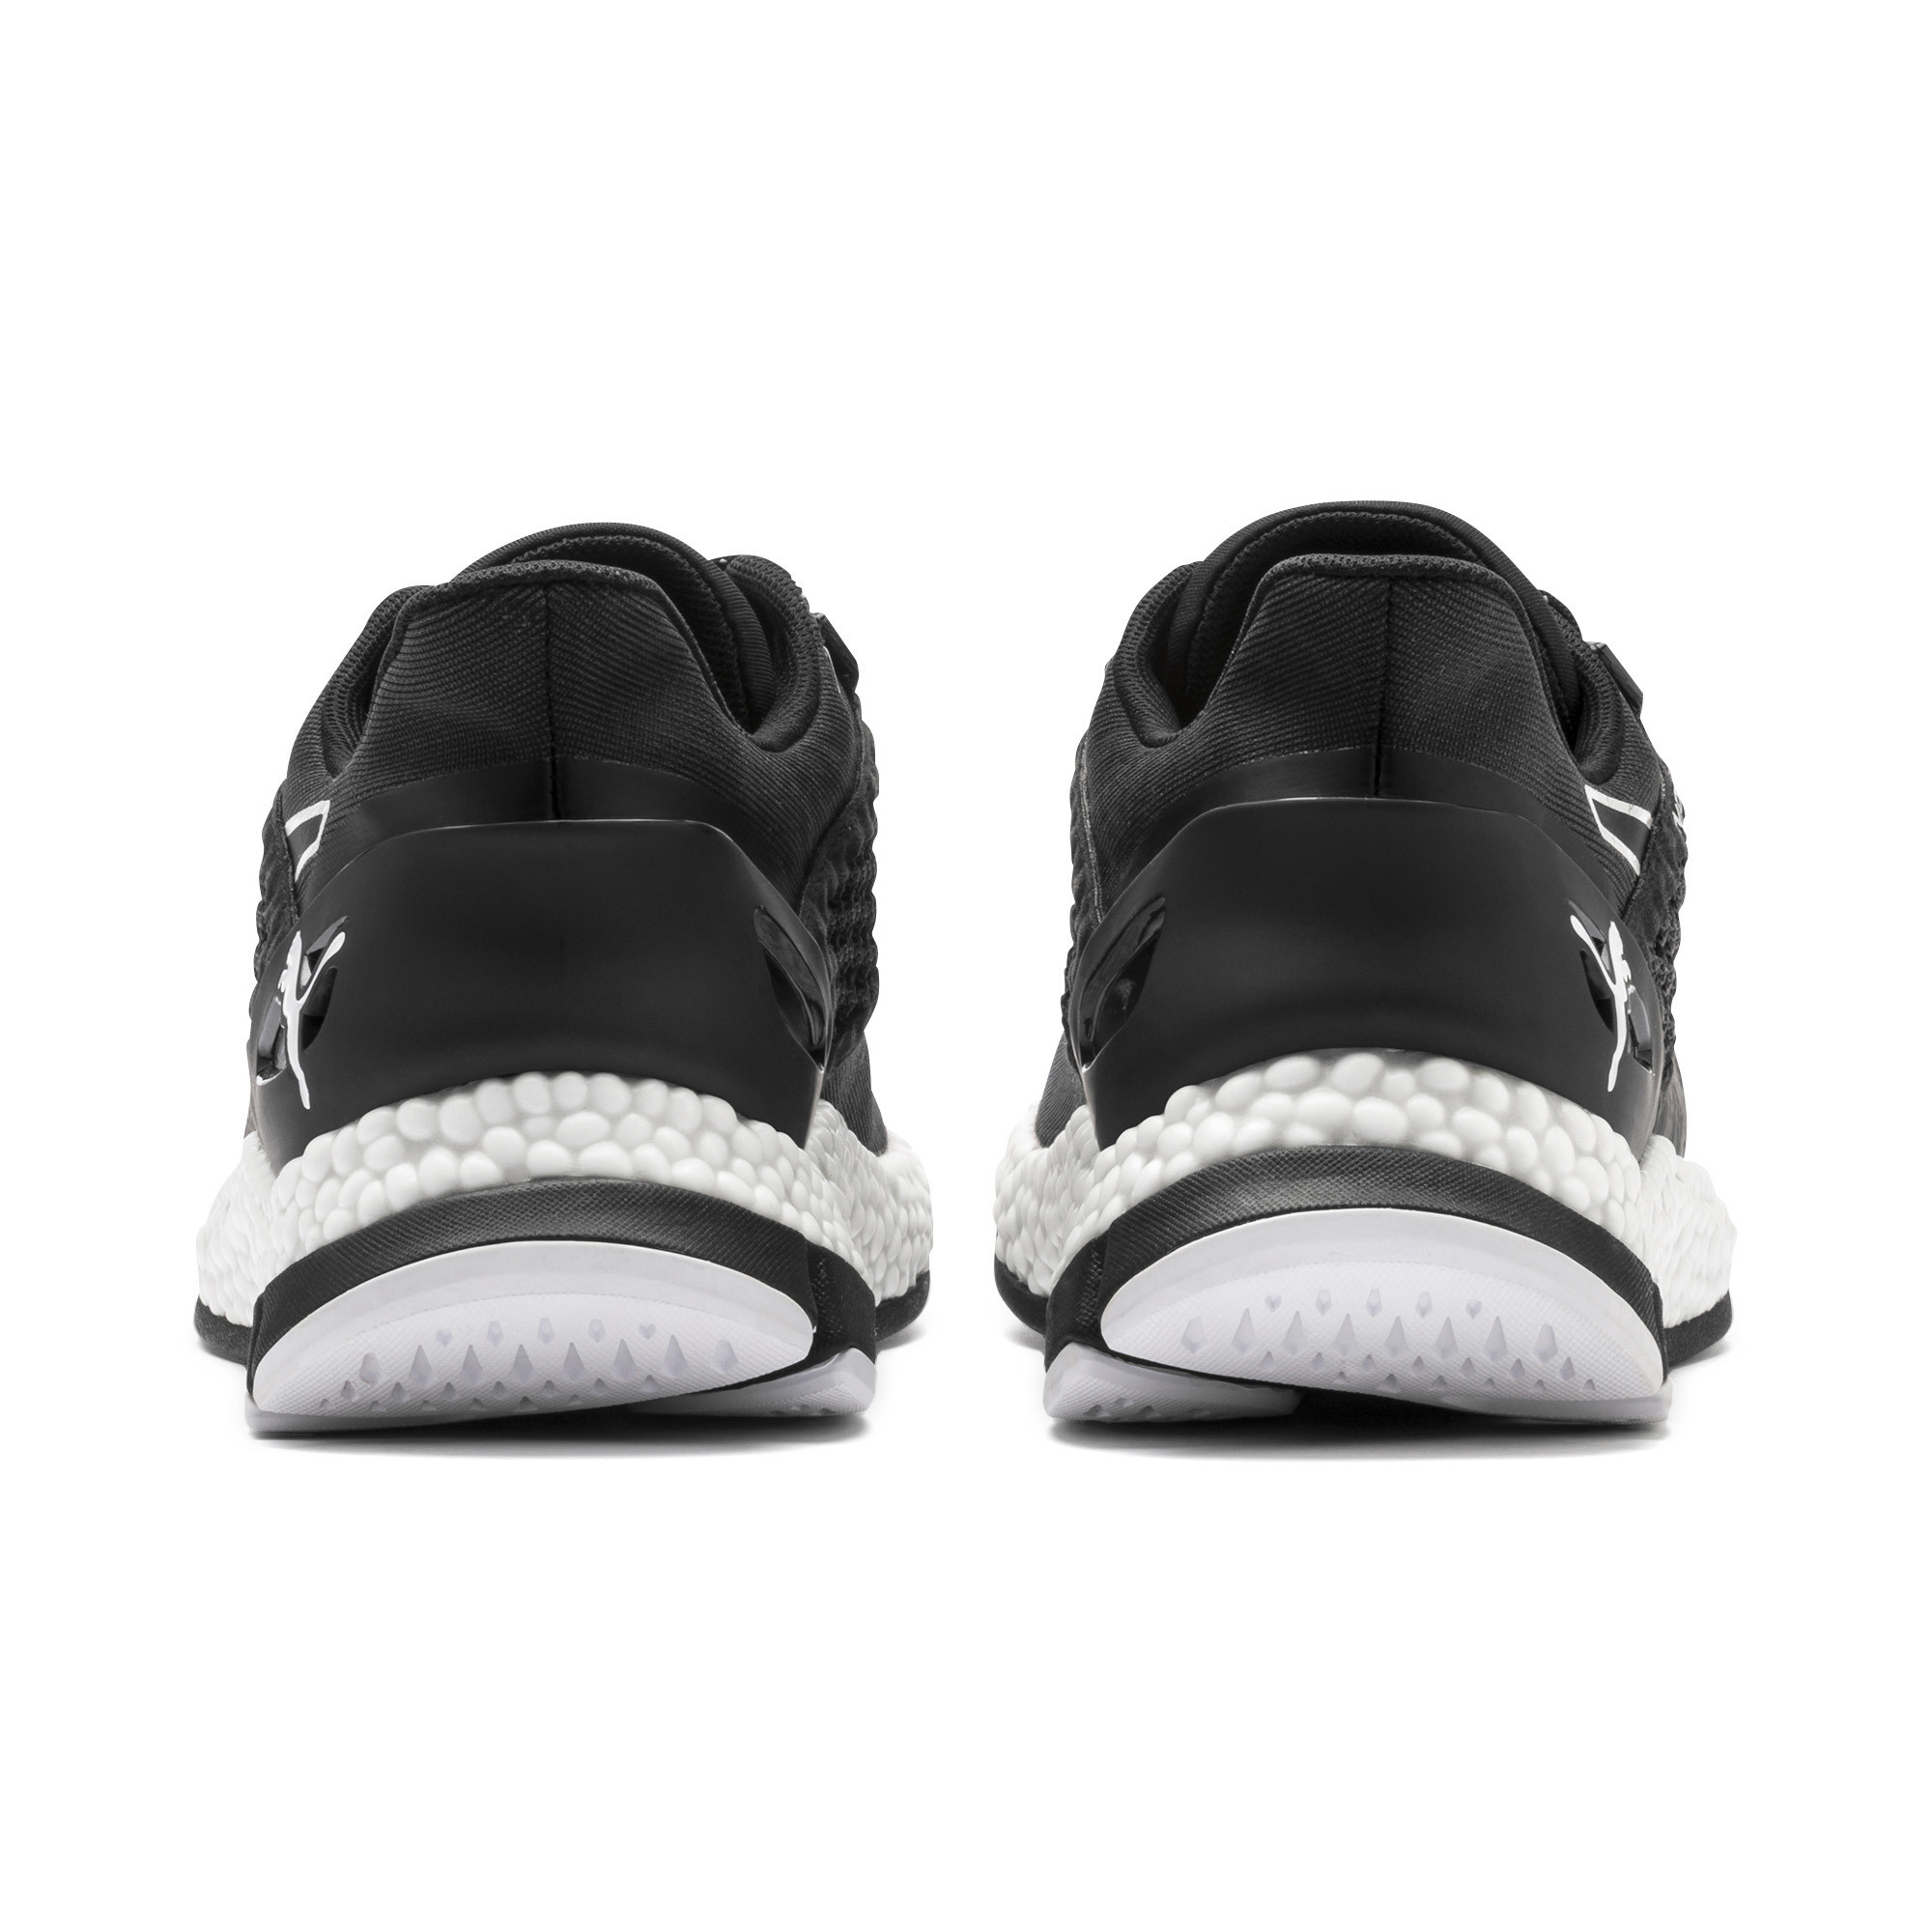 PUMA-HYBRID-Astro-Men-039-s-Running-Shoes-Men-Shoe-Running thumbnail 9